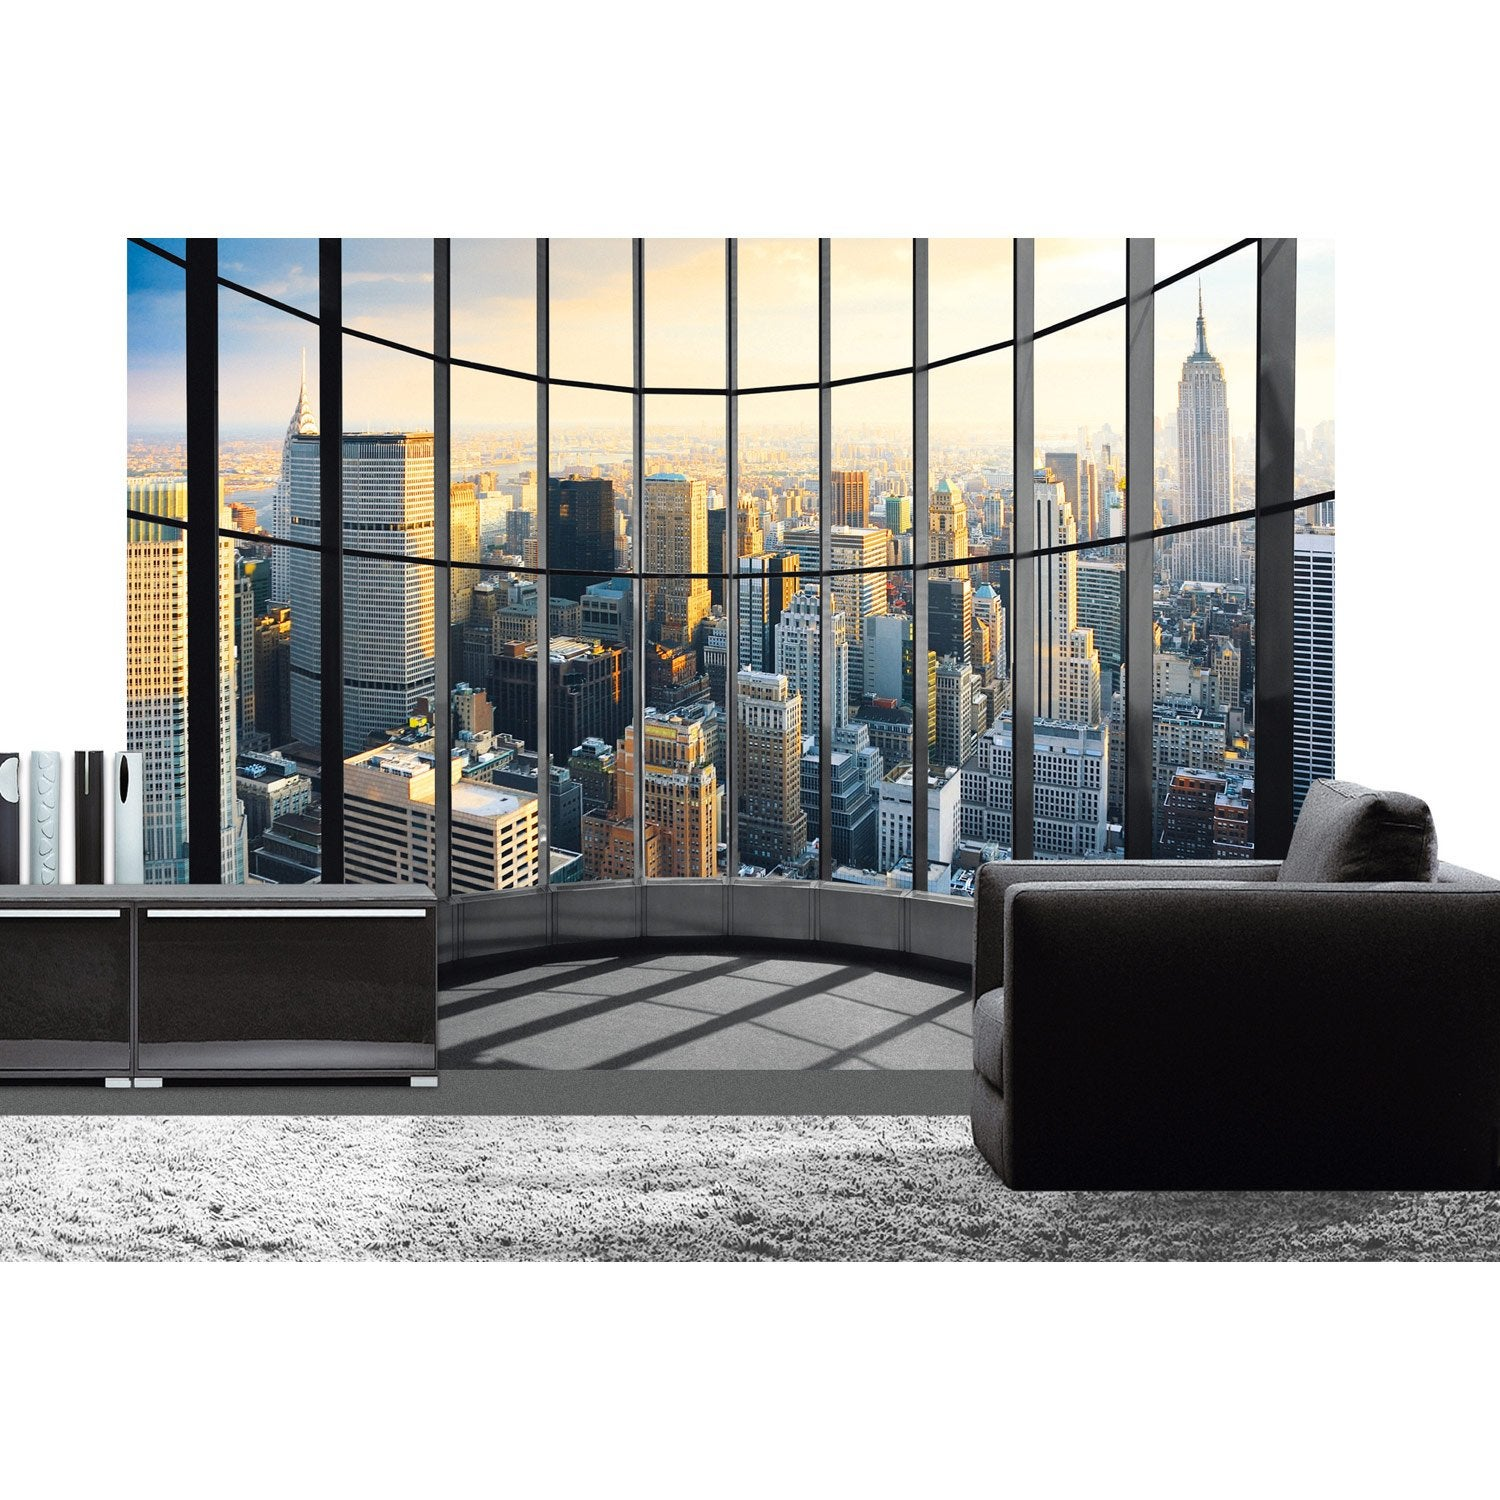 Poster xxl de mur office view deco wall x cm for Decoration murale geante new york